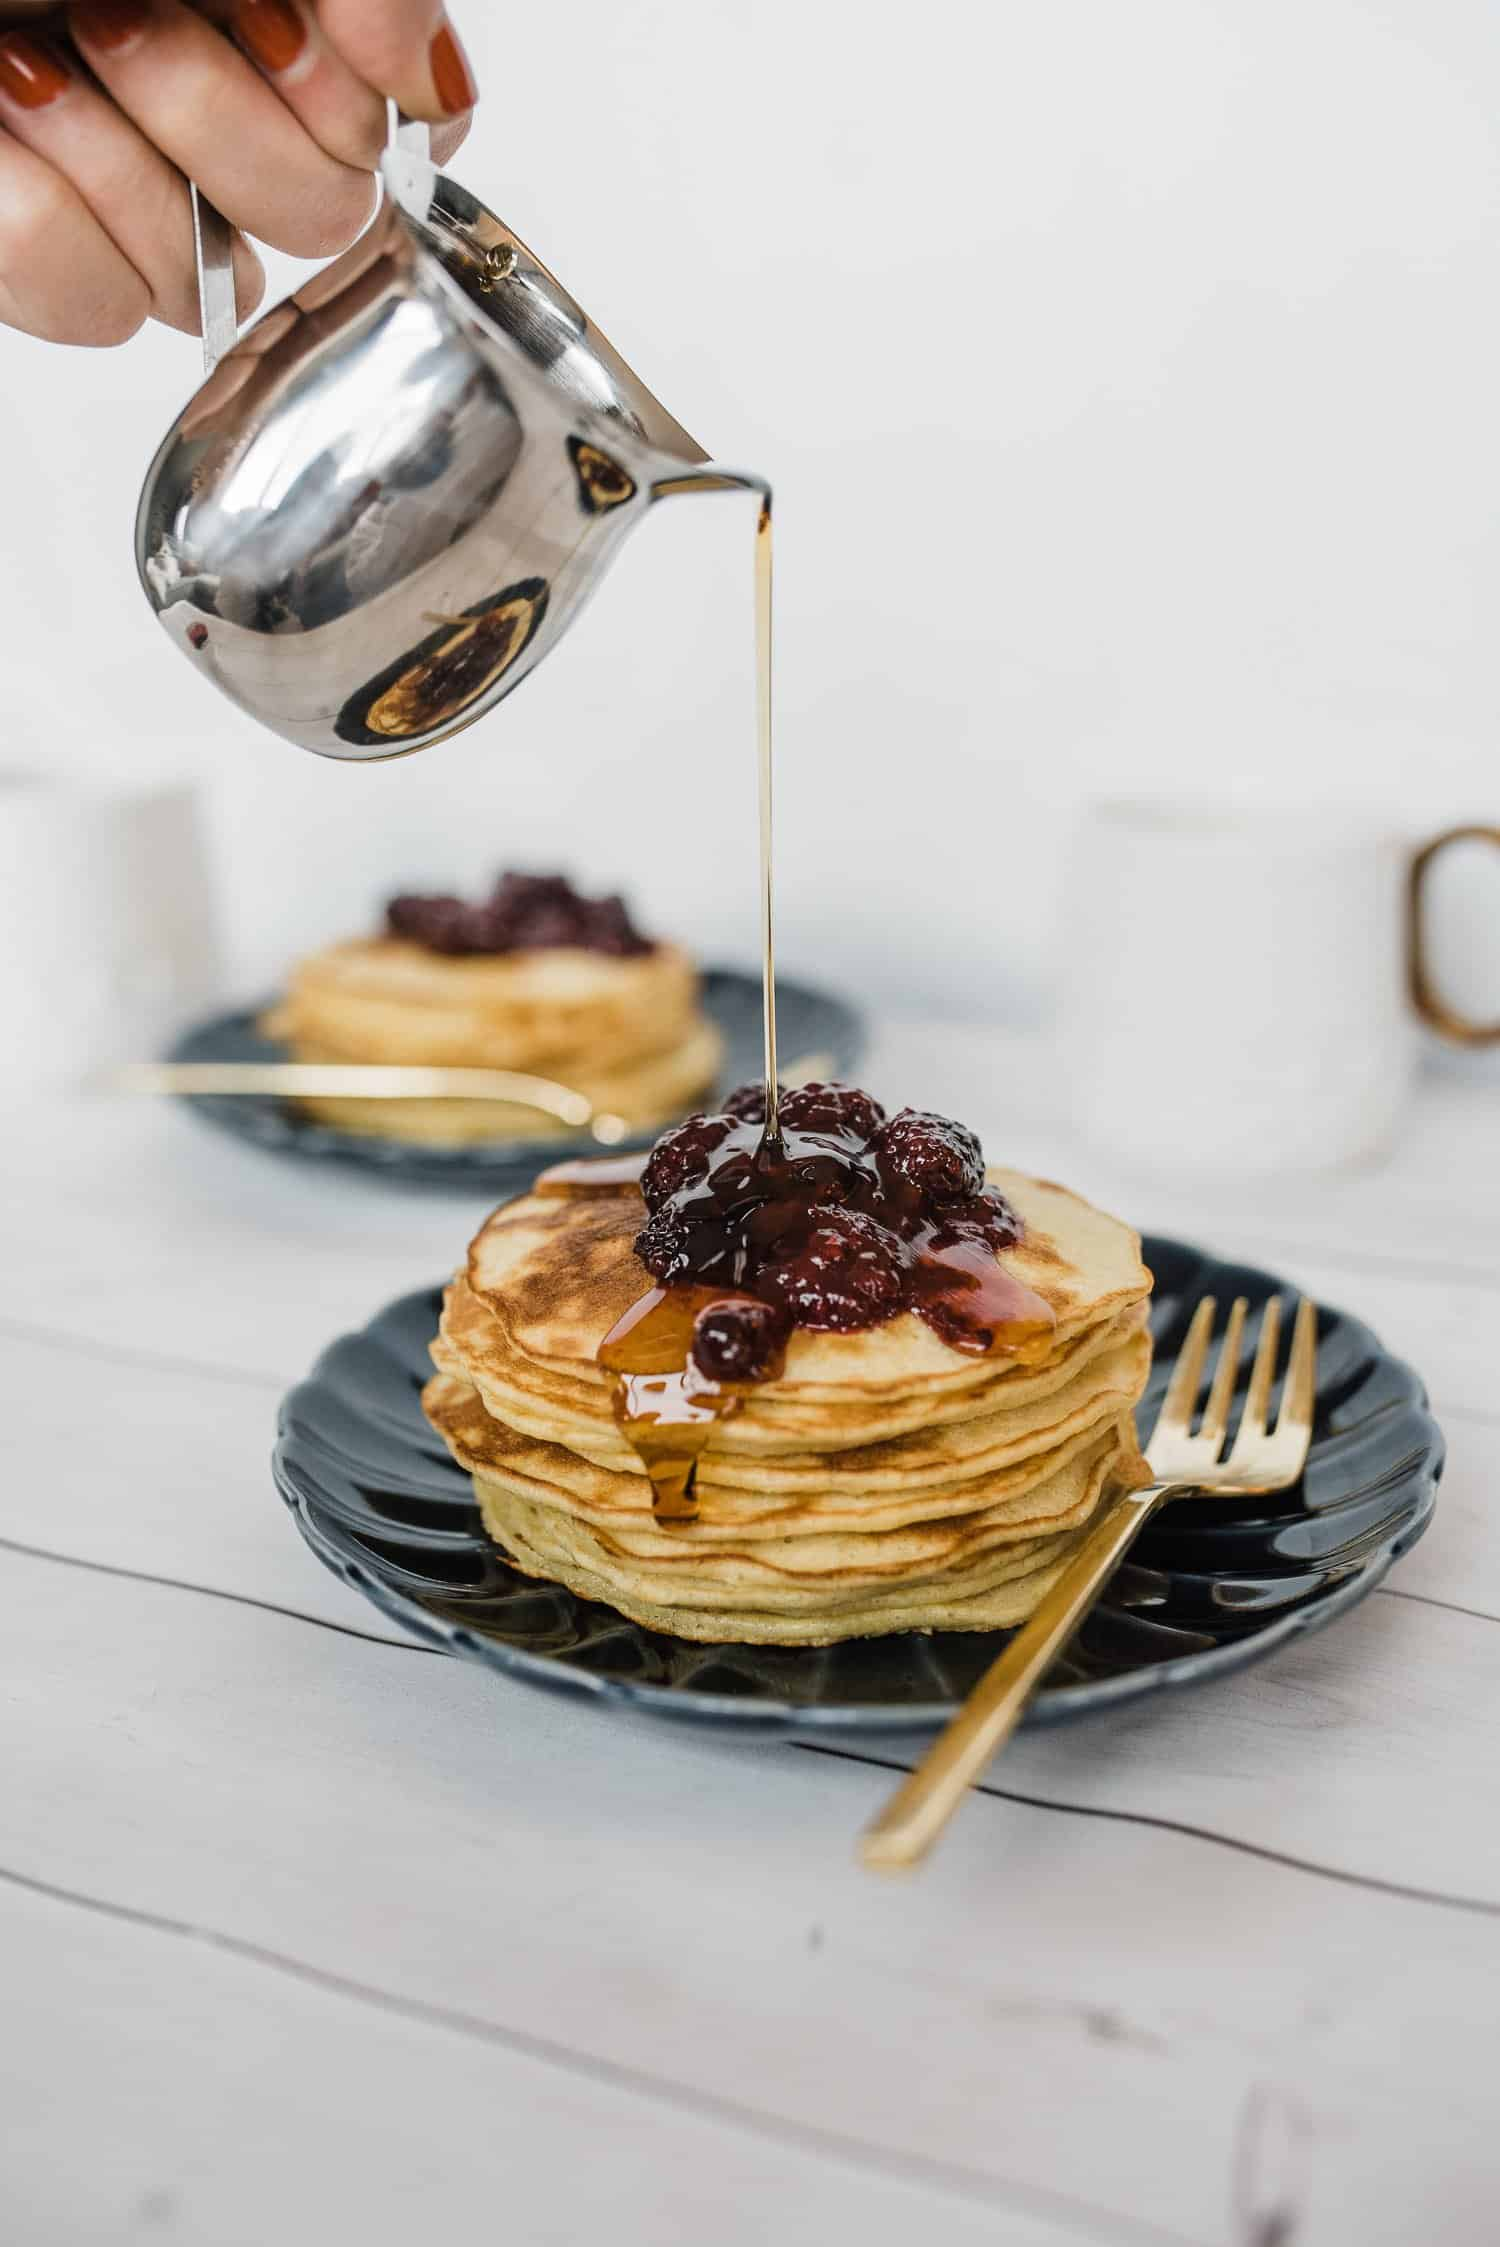 For a fresh take on pancakes, try swapping your regular dairy for oatmilk. It's a more flavorful alternative that creates delicious pancakes for breakfast or brunch! Top with the easiest berry sauce ever! #recipe #pancakes #brunch